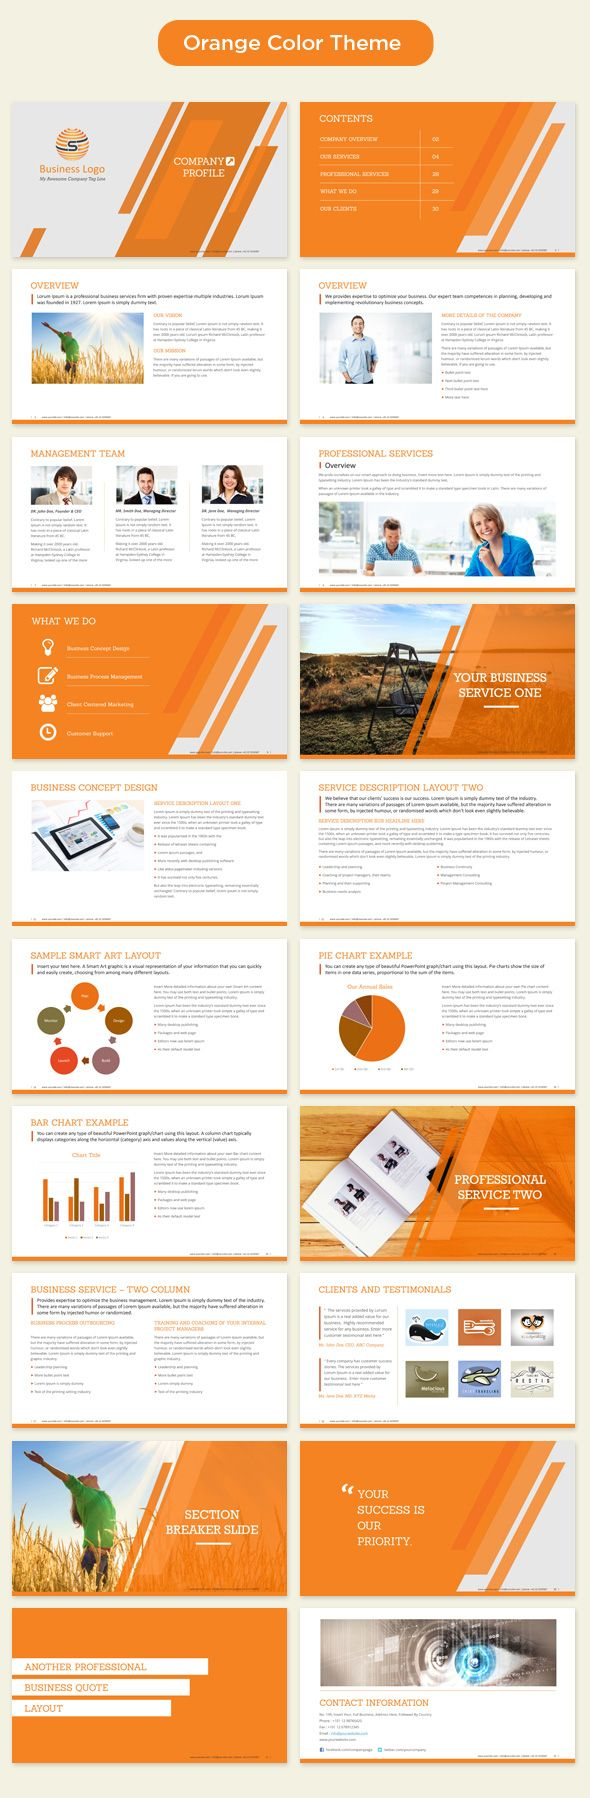 Example Of Company Profile Template Impressive Company Profile Template Powerpointtemplate Is Available In 4 Uni .